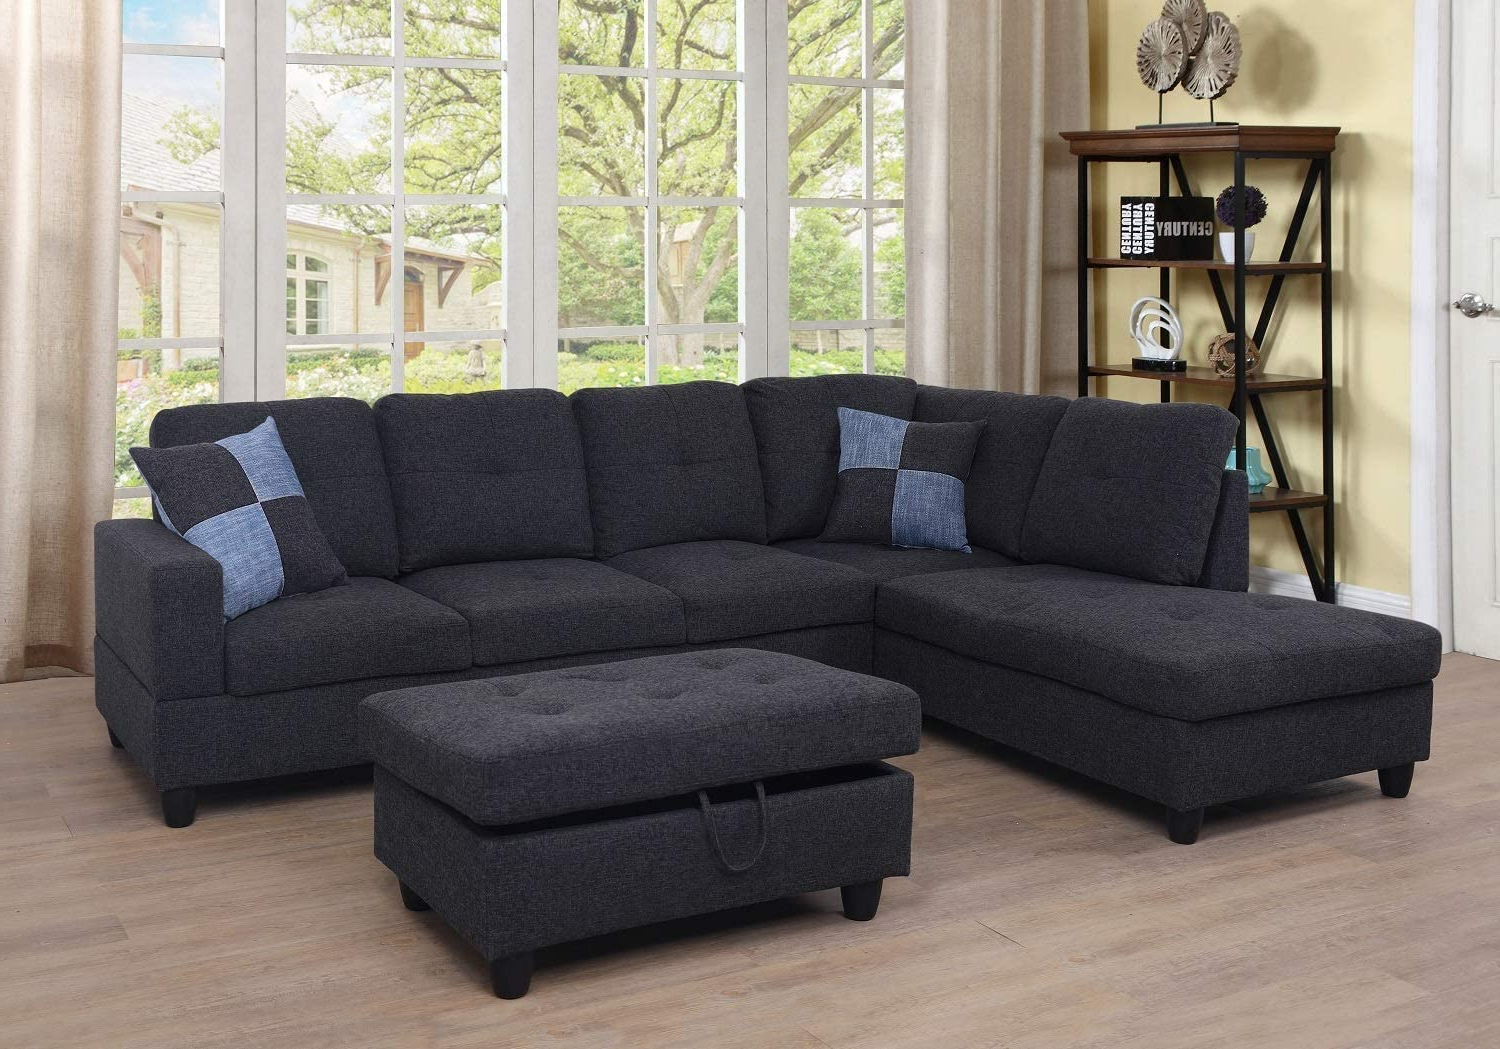 Well Known Ponliving Furniture 3 Pcpiece Sectional Sofa Couch Set, L Regarding Hannah Right Sectional Sofas (View 1 of 20)